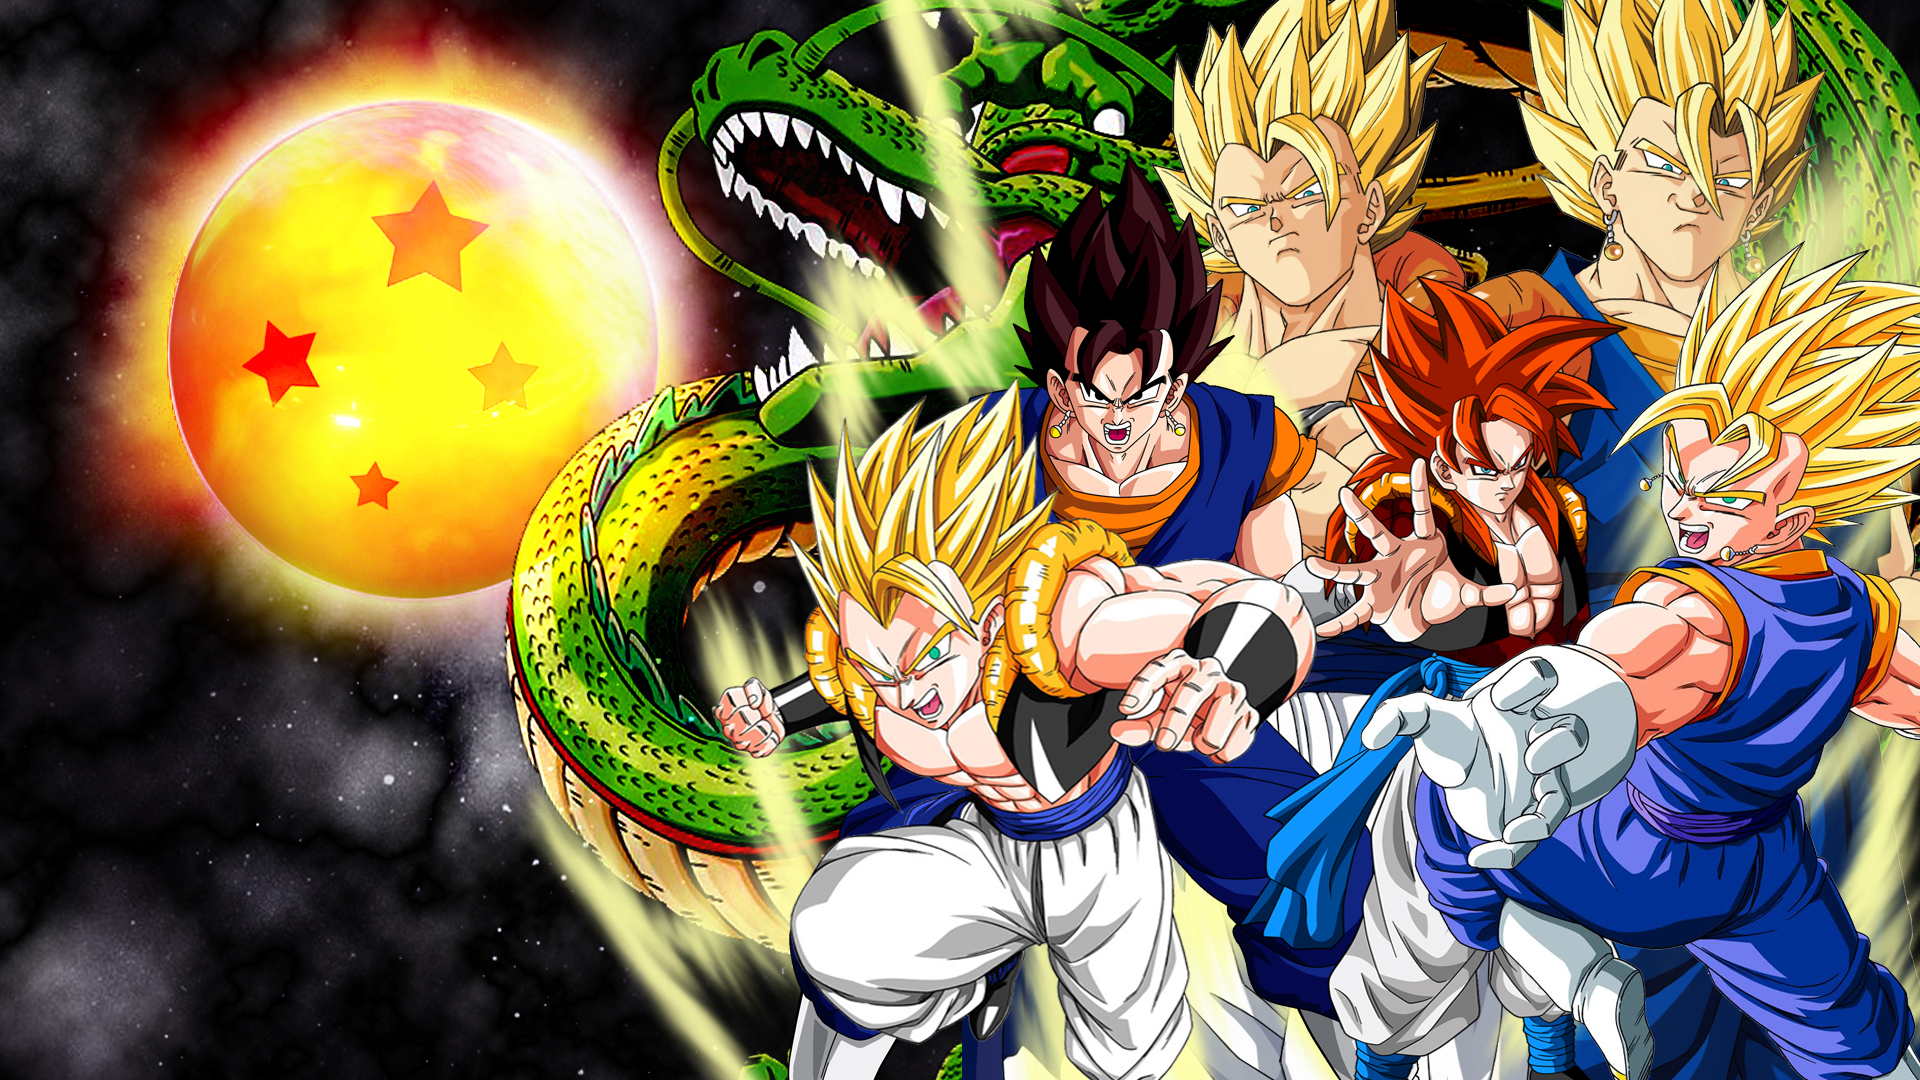 Top Dragon Ball Z Hd Wallpapers For Pc 1920x1080